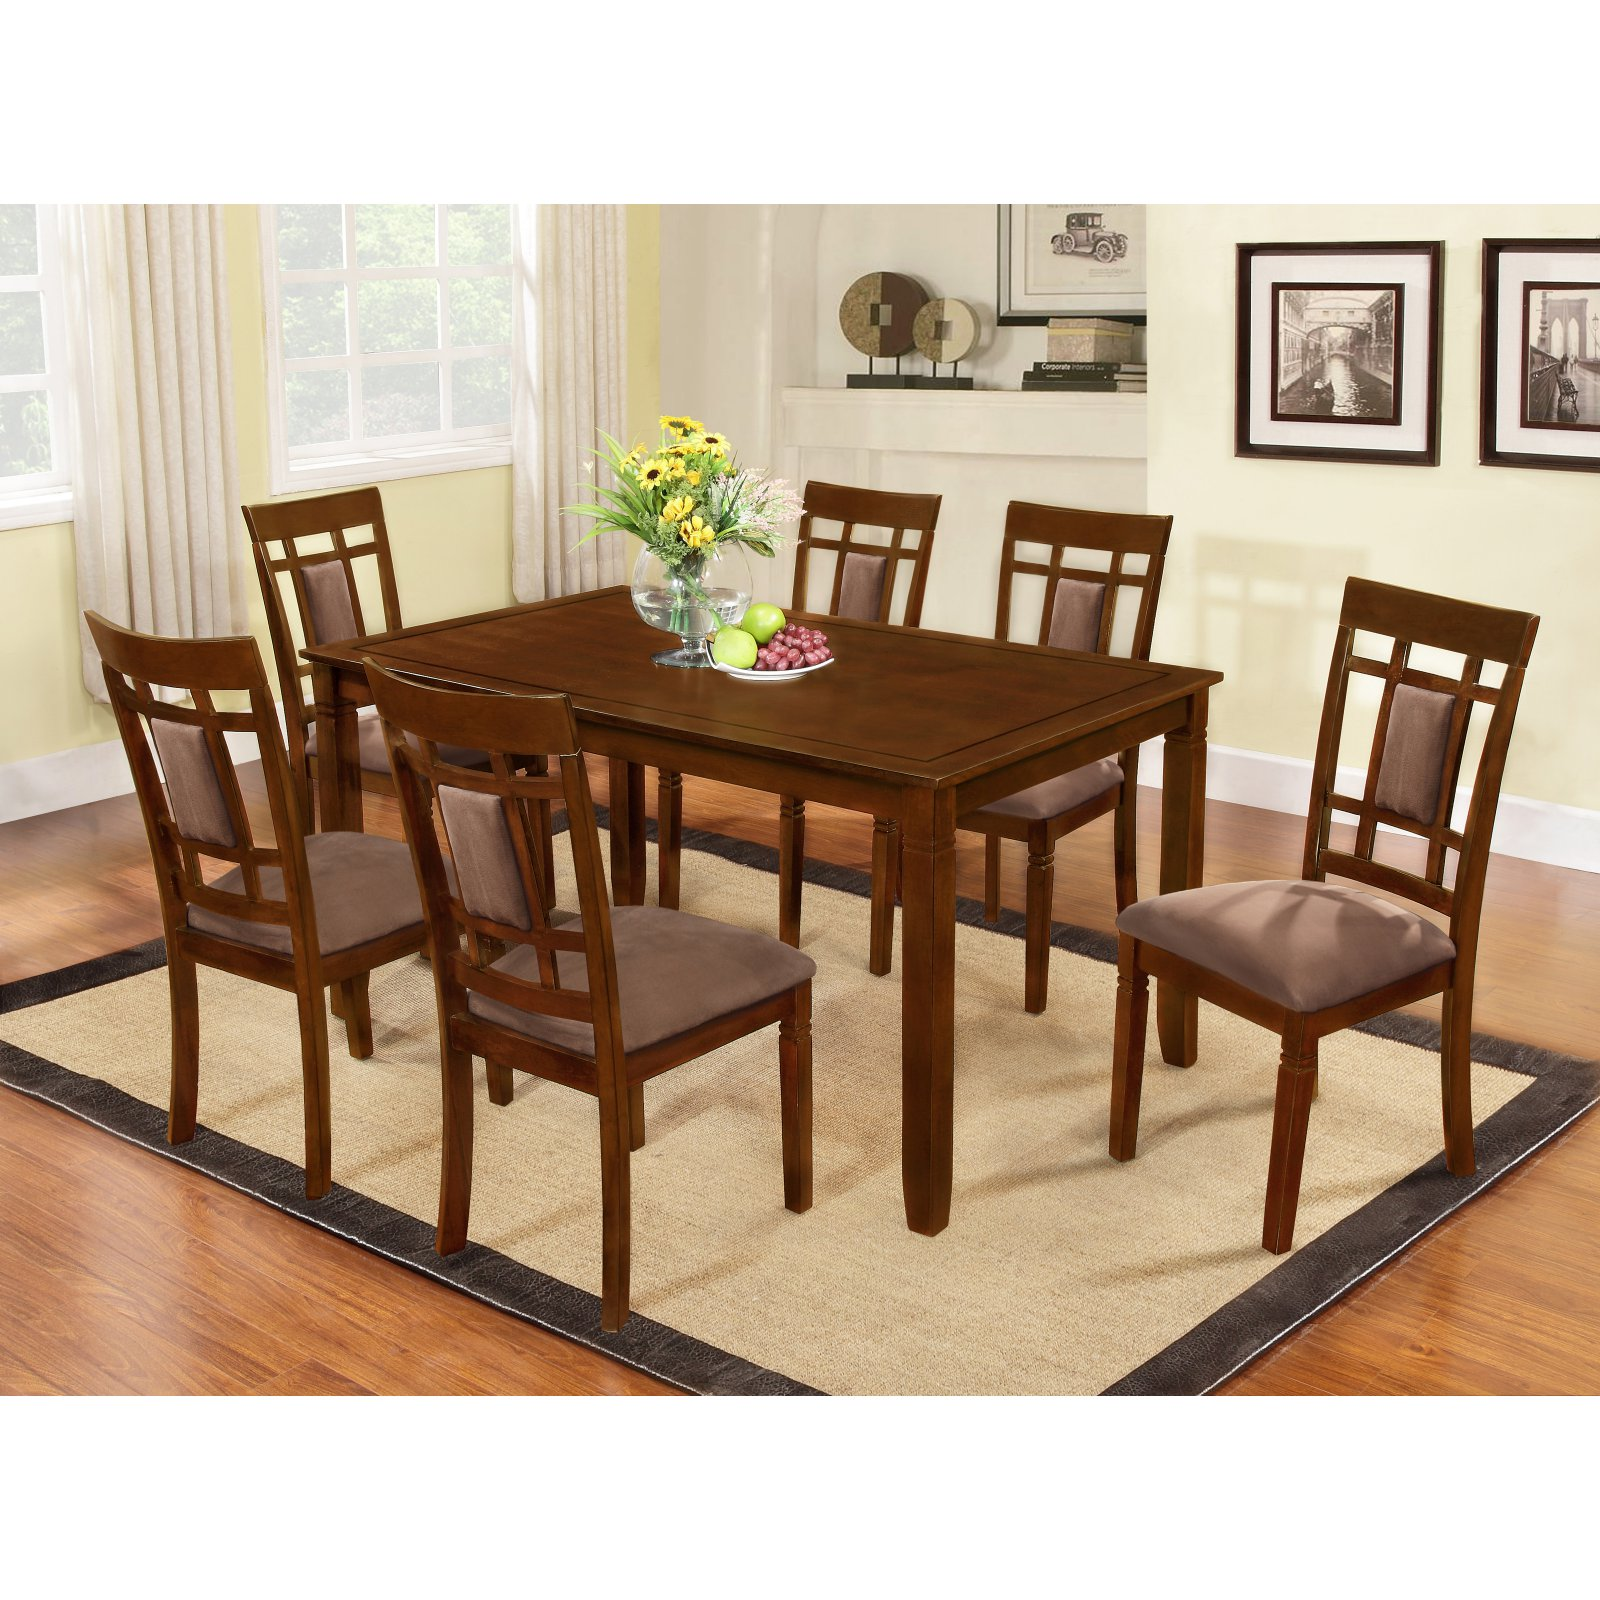 Roundhill Furniture Inworld 7 Piece Dining Table Set